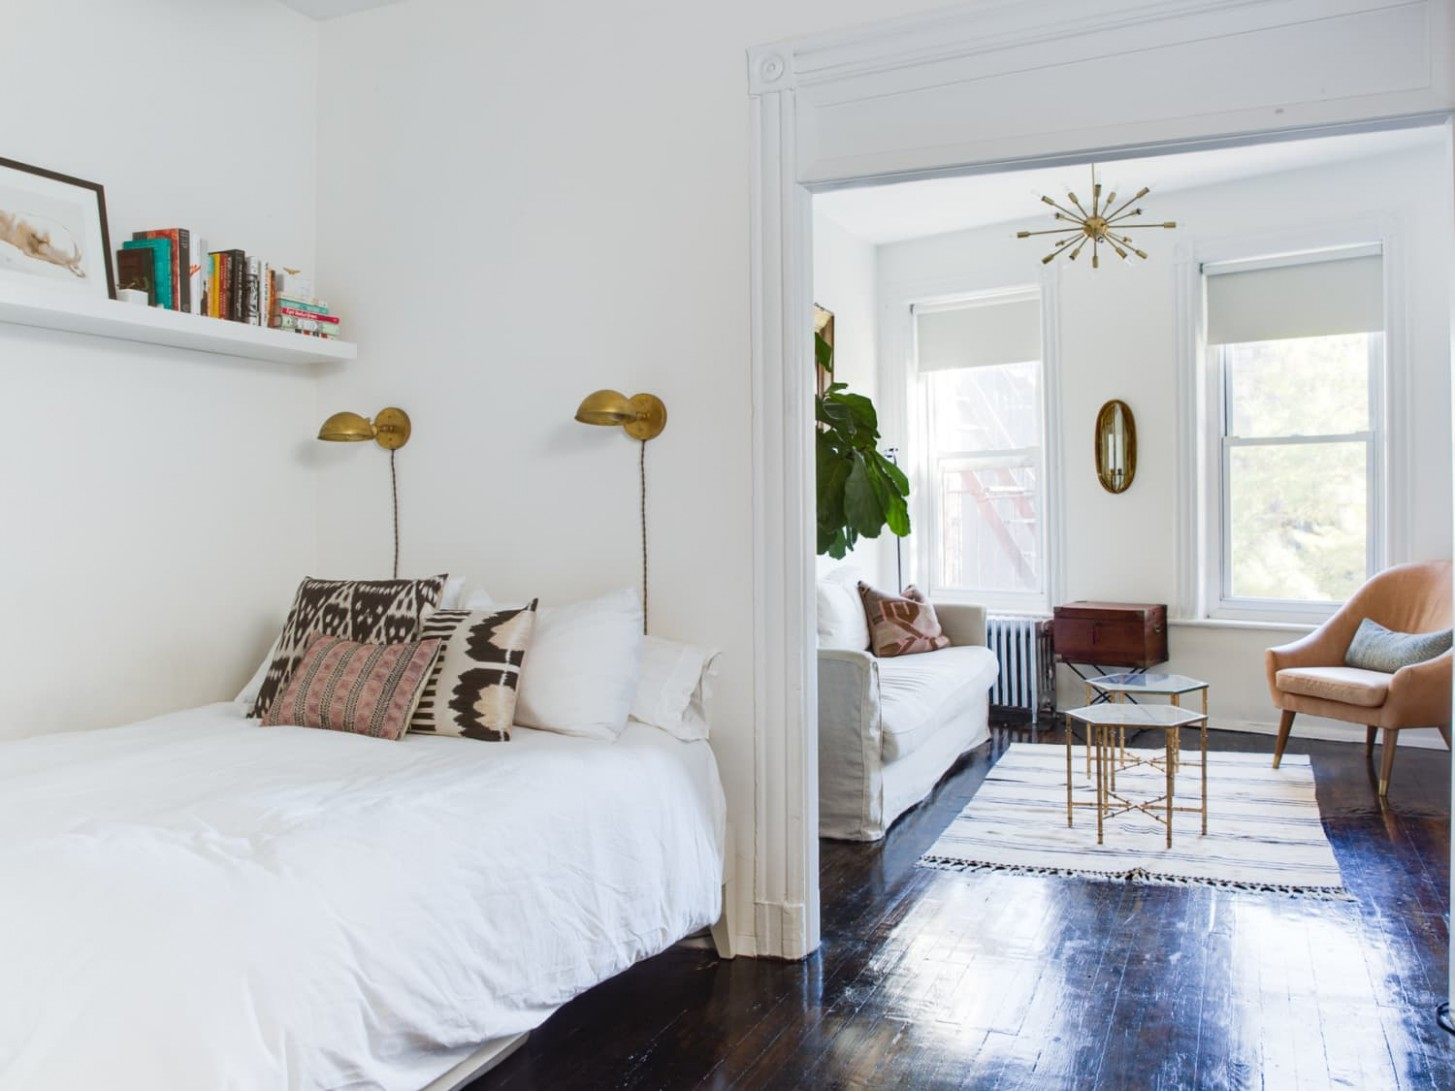 9 Small Bedroom Ideas - How to Decorate a Small Bedroom  - 10X10 Bedroom Ideas